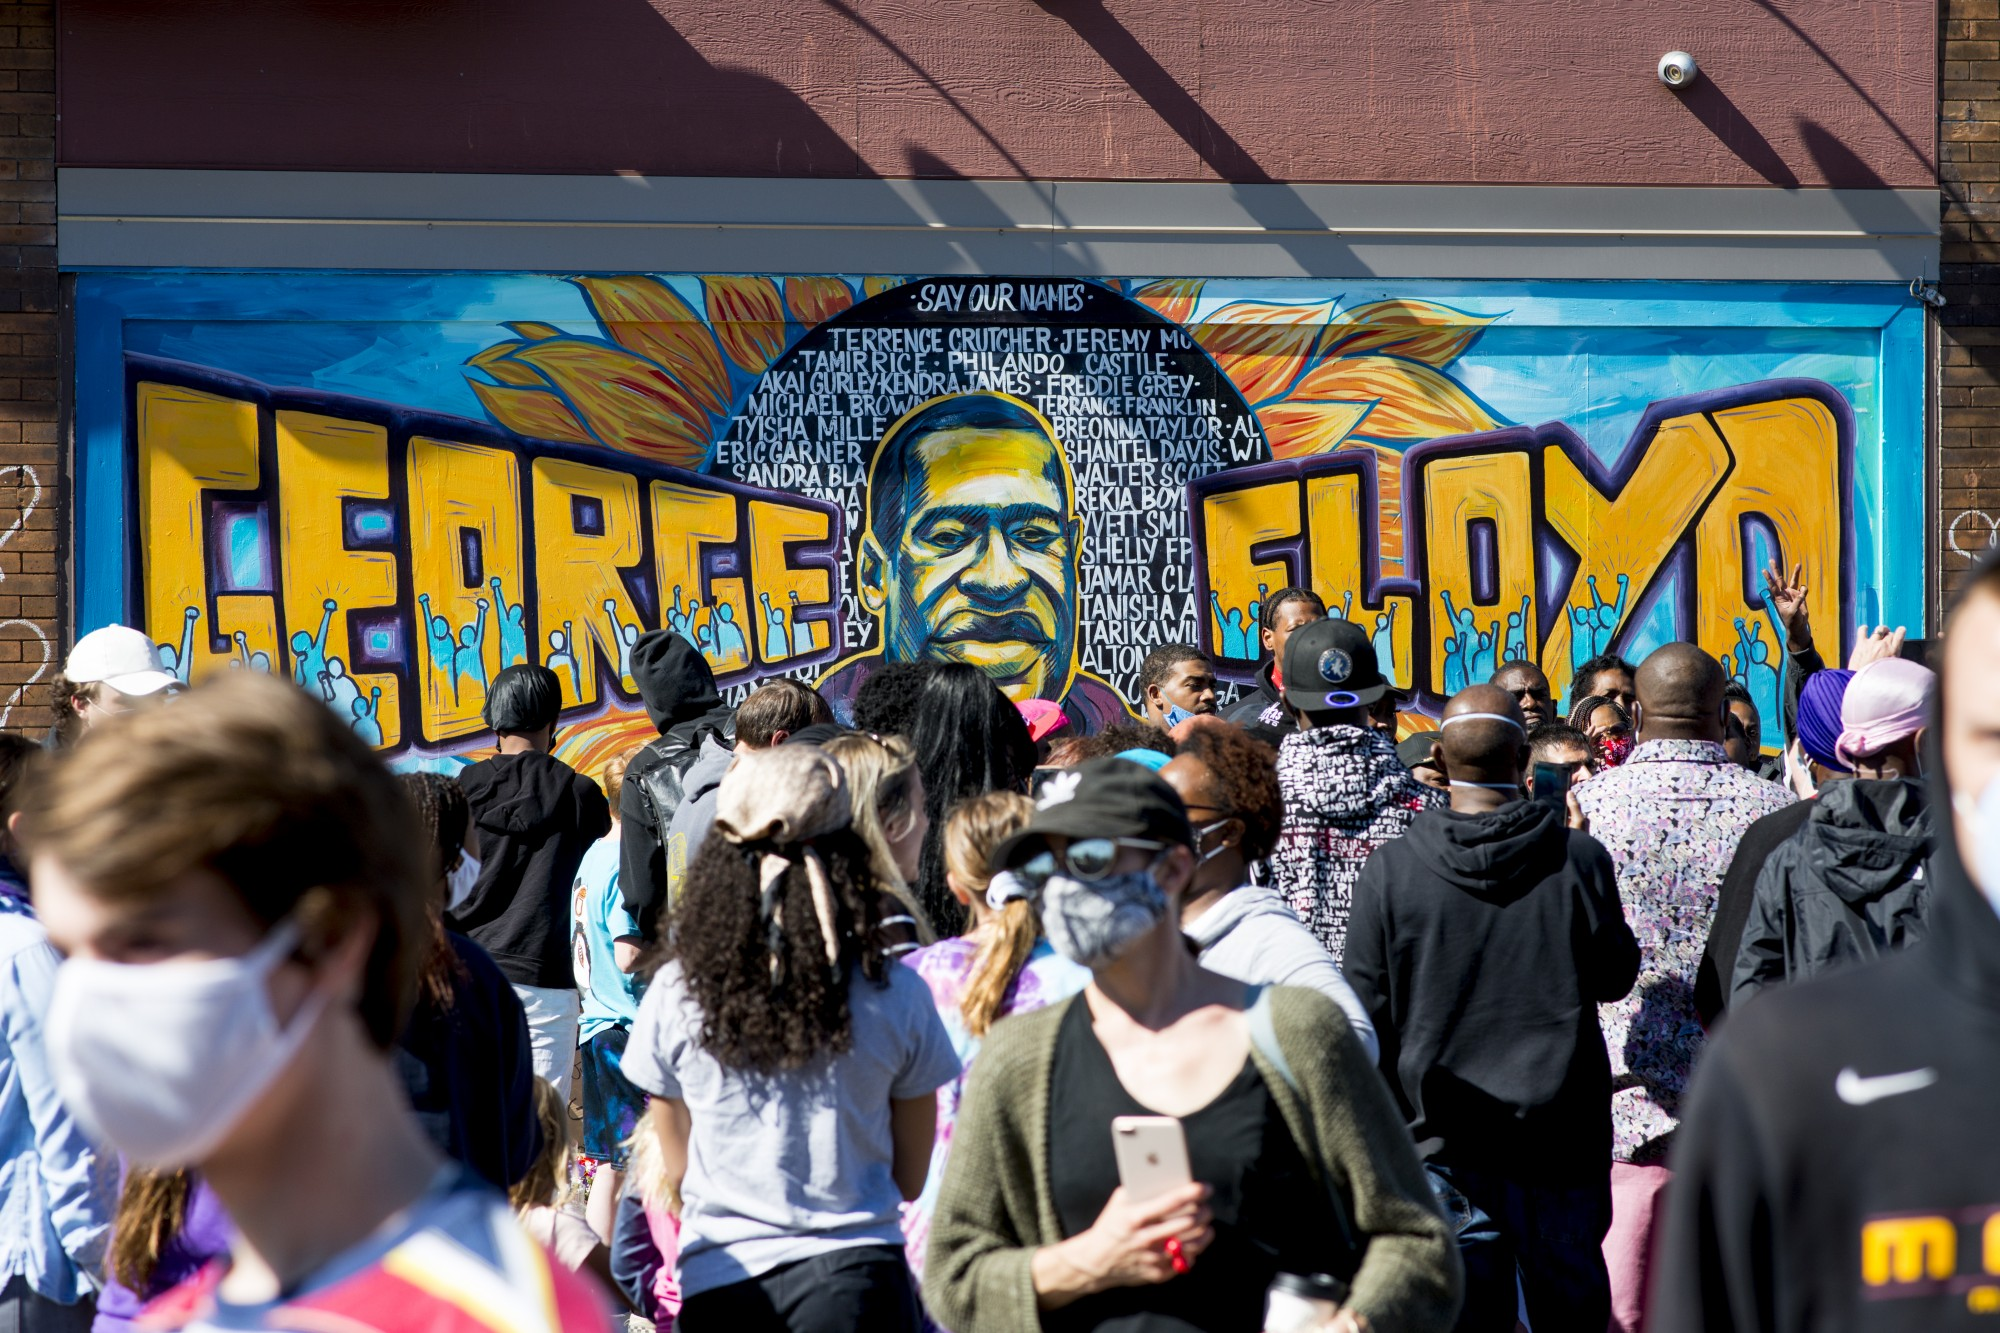 Demonstrators gather near the intersection of Chicago Avenue and East 38th Street at a memorial established for George Floyd on Friday, May 29.